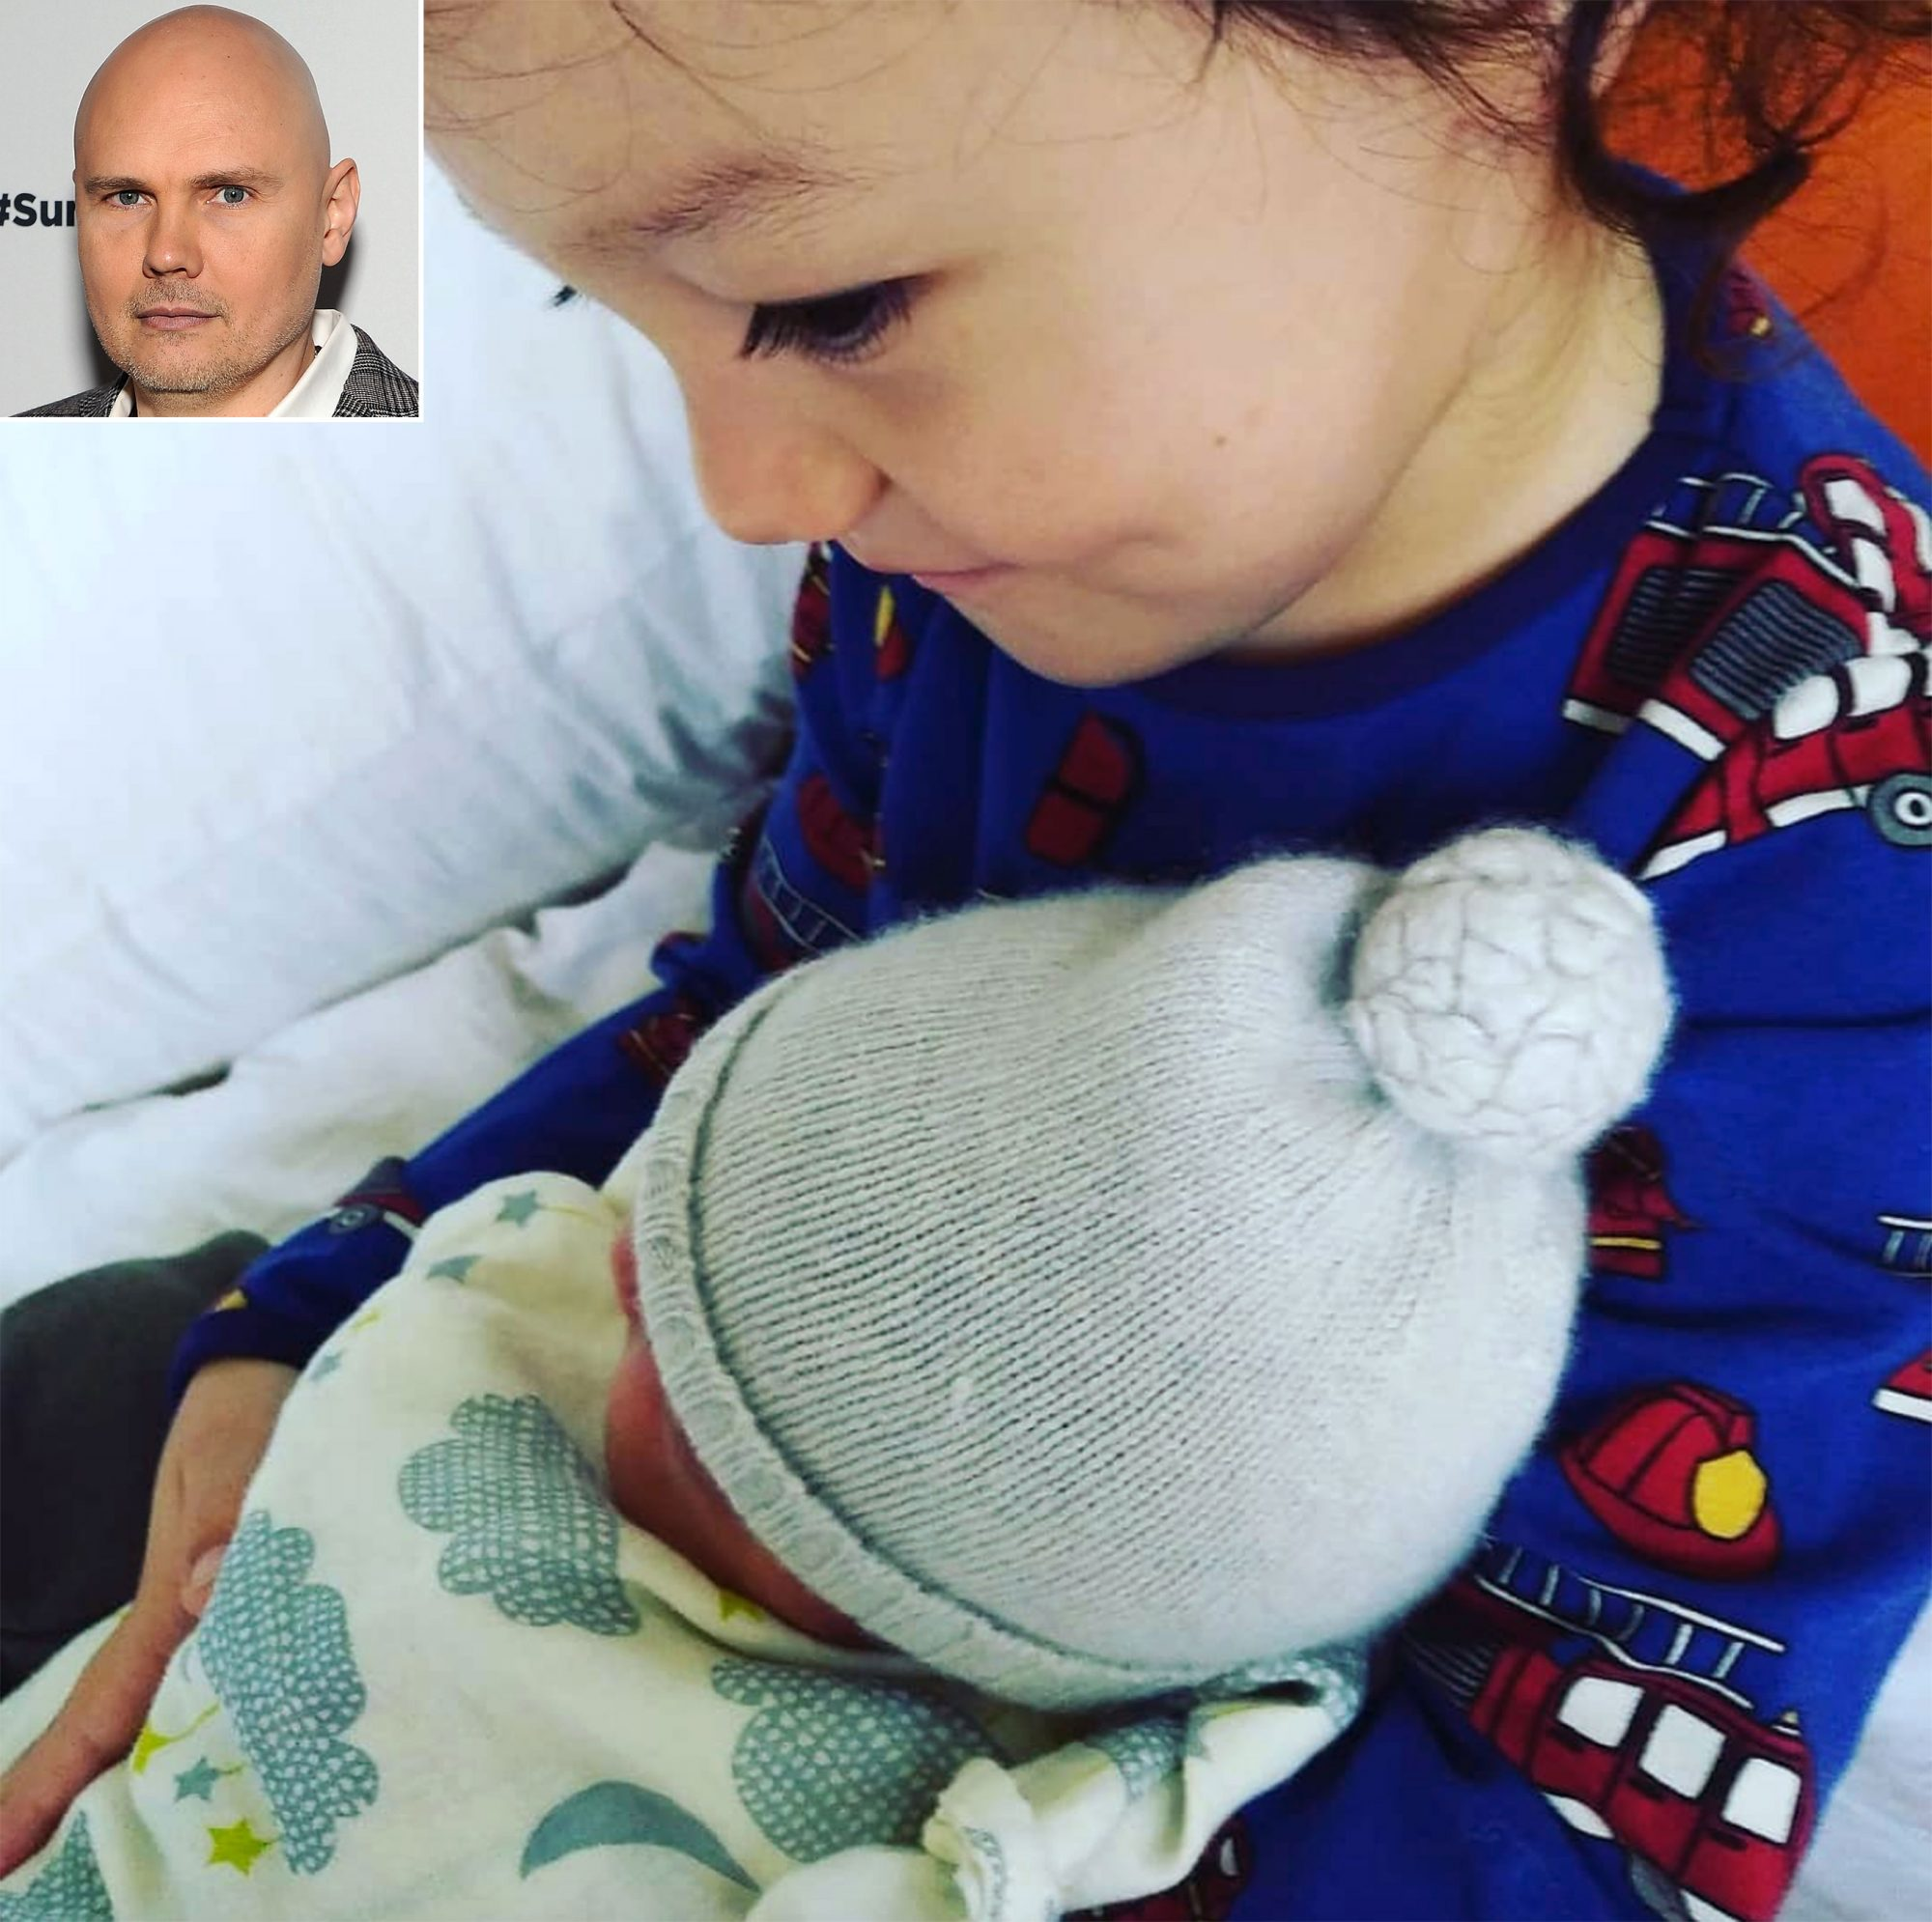 There's a new addition to the Corgan family! On Oct. 2, Smashing Pumpkins frontman Billy Corgan surprised fans and announced on Instagram that he and partner Chloe Mendel had welcomed a baby girl together, Philomena Clementine Corgan. The singer posted a sweet shot of the newborn being held by her big brother, 2½-year-old Augustus Juppiter.